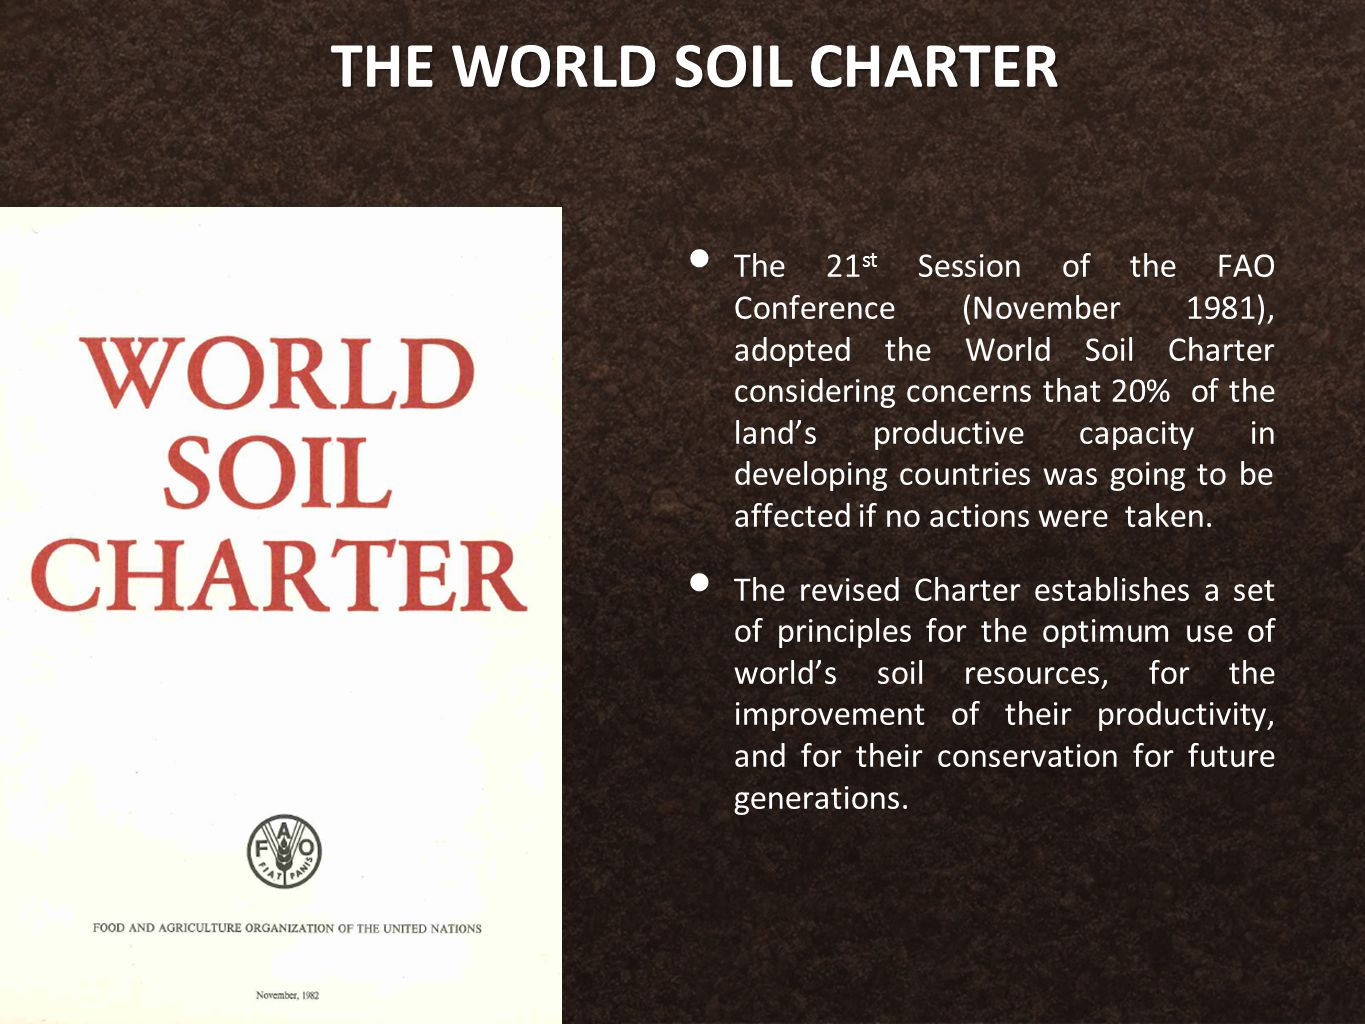 THE WORLD SOIL CHARTER The 21 st Session of the FAO Conference (November 1981), adopted the World Soil Charter considering concerns that 20% of the land's productive capacity in developing countries was going to be affected if no actions were taken.